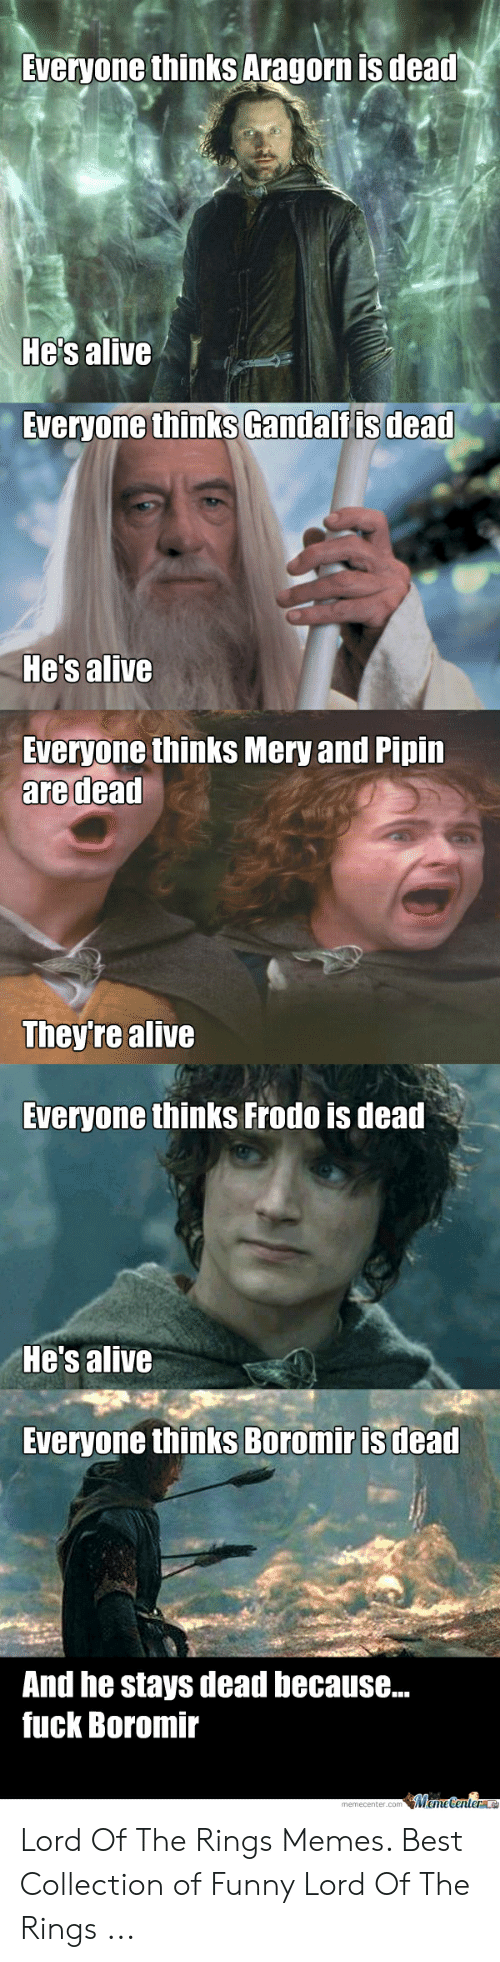 Funny Lord Of The Rings: Sveryone thinks Aragorn is deat  He's alive  Everyone thinks Gandalfis dead  Hes alive  Everyone thinks Mery and Pipin  are dead  They're alive  Everyone thinks Frodo is dead  He's alive  Everyone thinks Boromir is dead  And he stays dead because...  fuck Boromir  memecenter.com MemeCenterl Lord Of The Rings Memes. Best Collection of Funny Lord Of The Rings ...